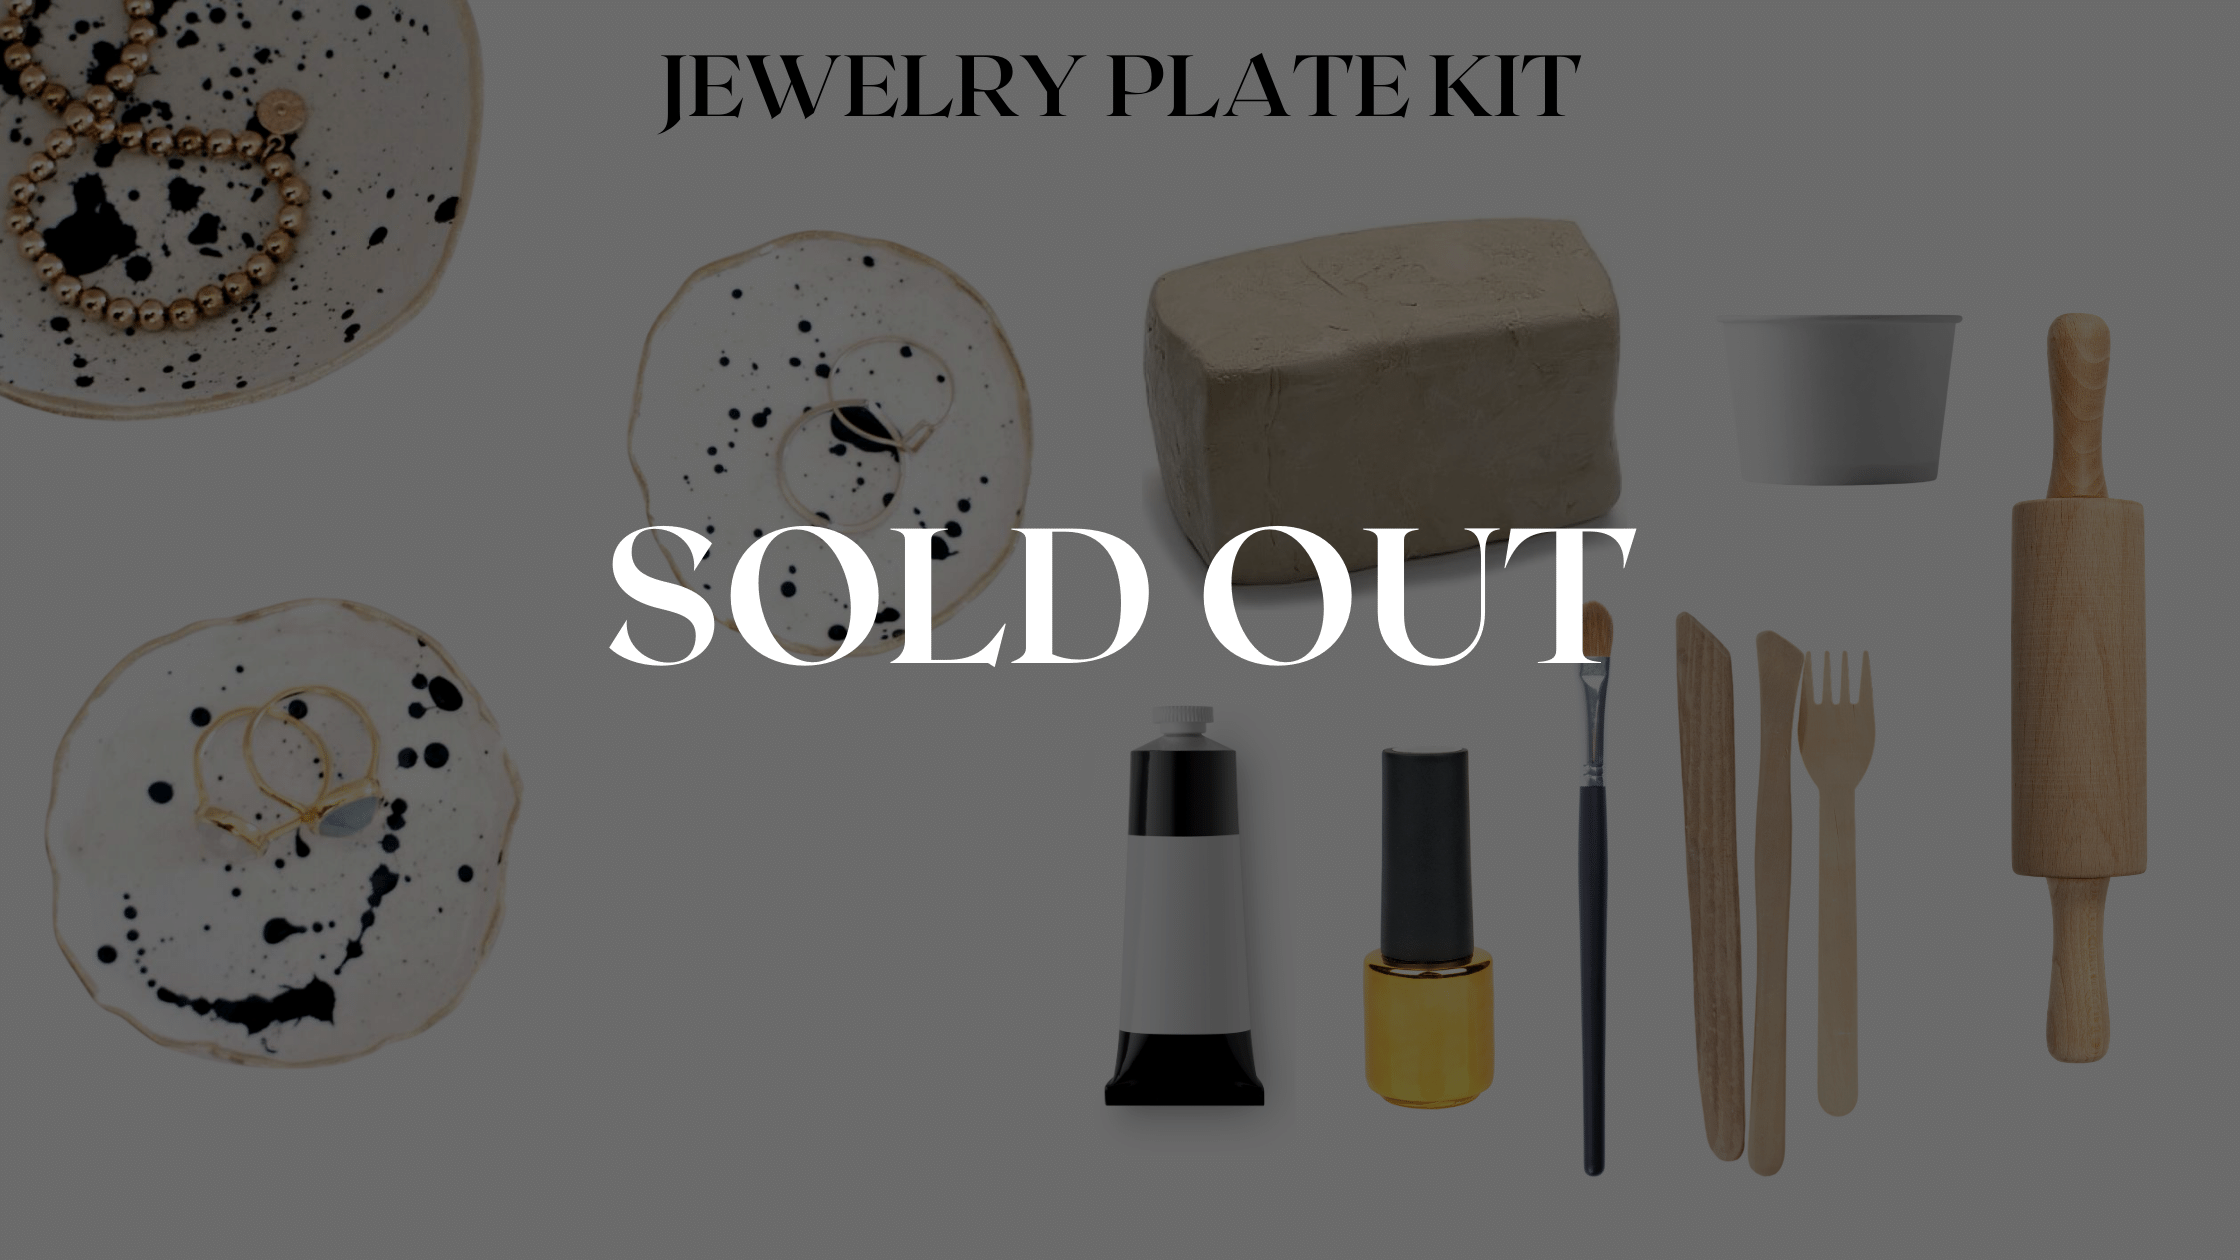 Our pottery craft kit is sold out, but you can leave us your email to be alerted for a restock